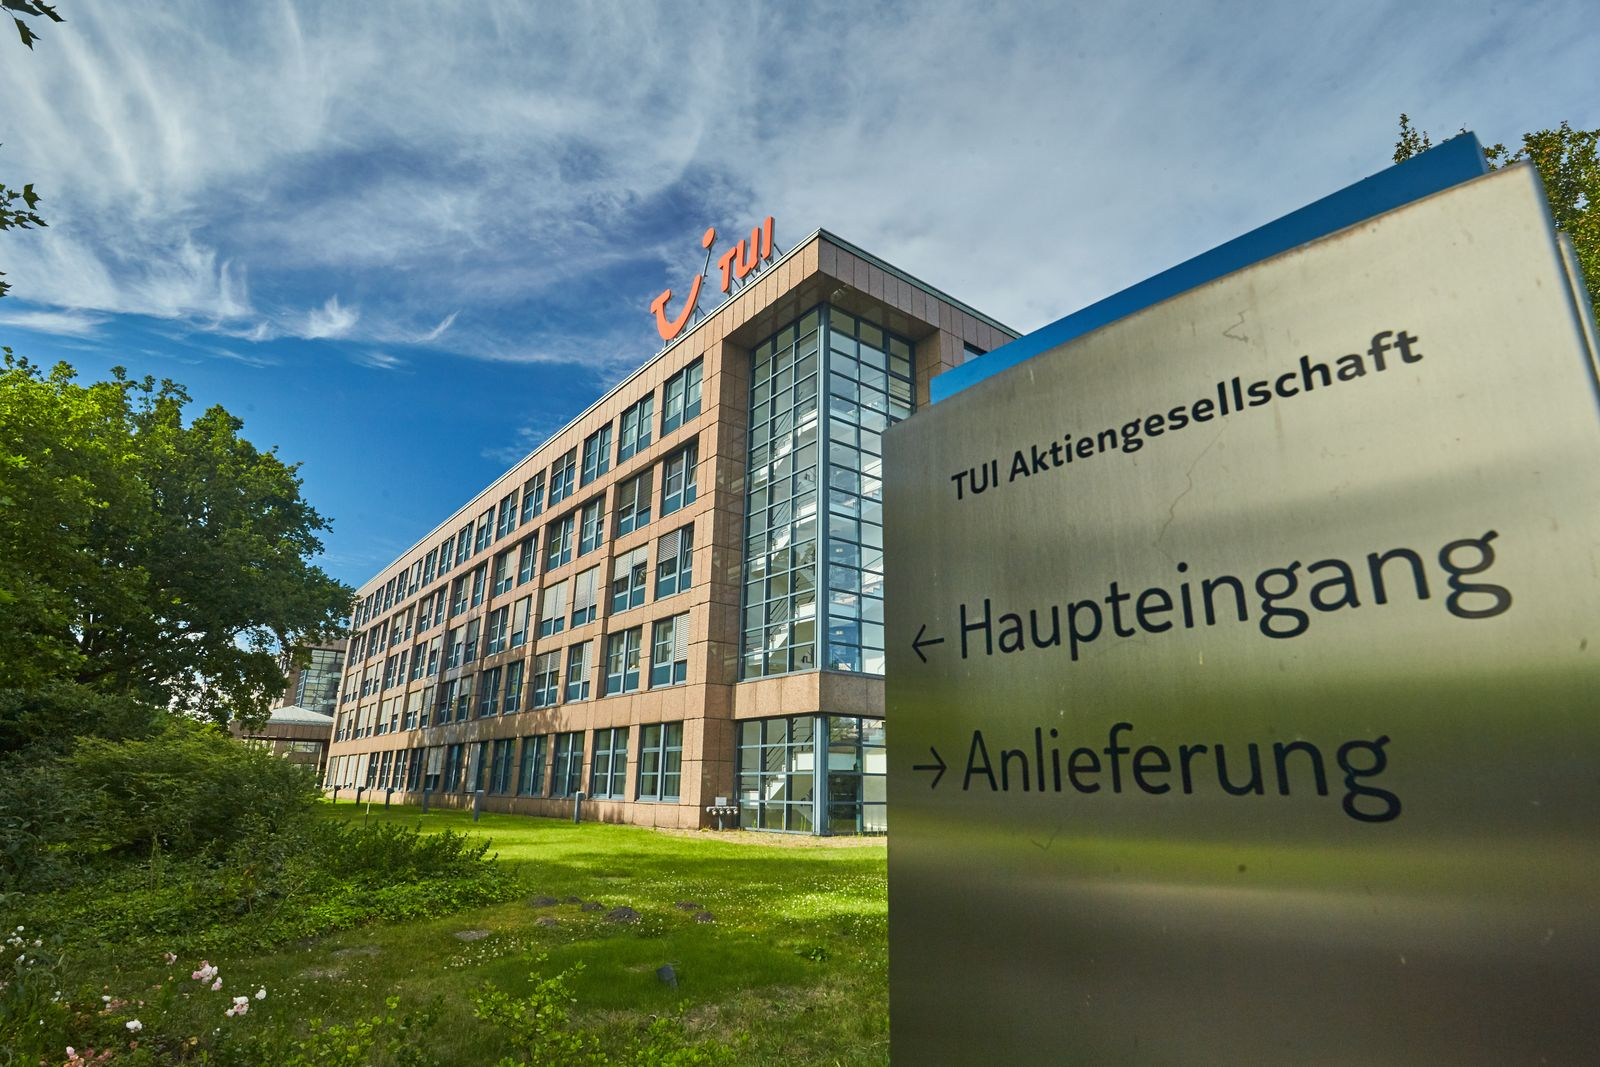 TUI Zentrale in Hannover